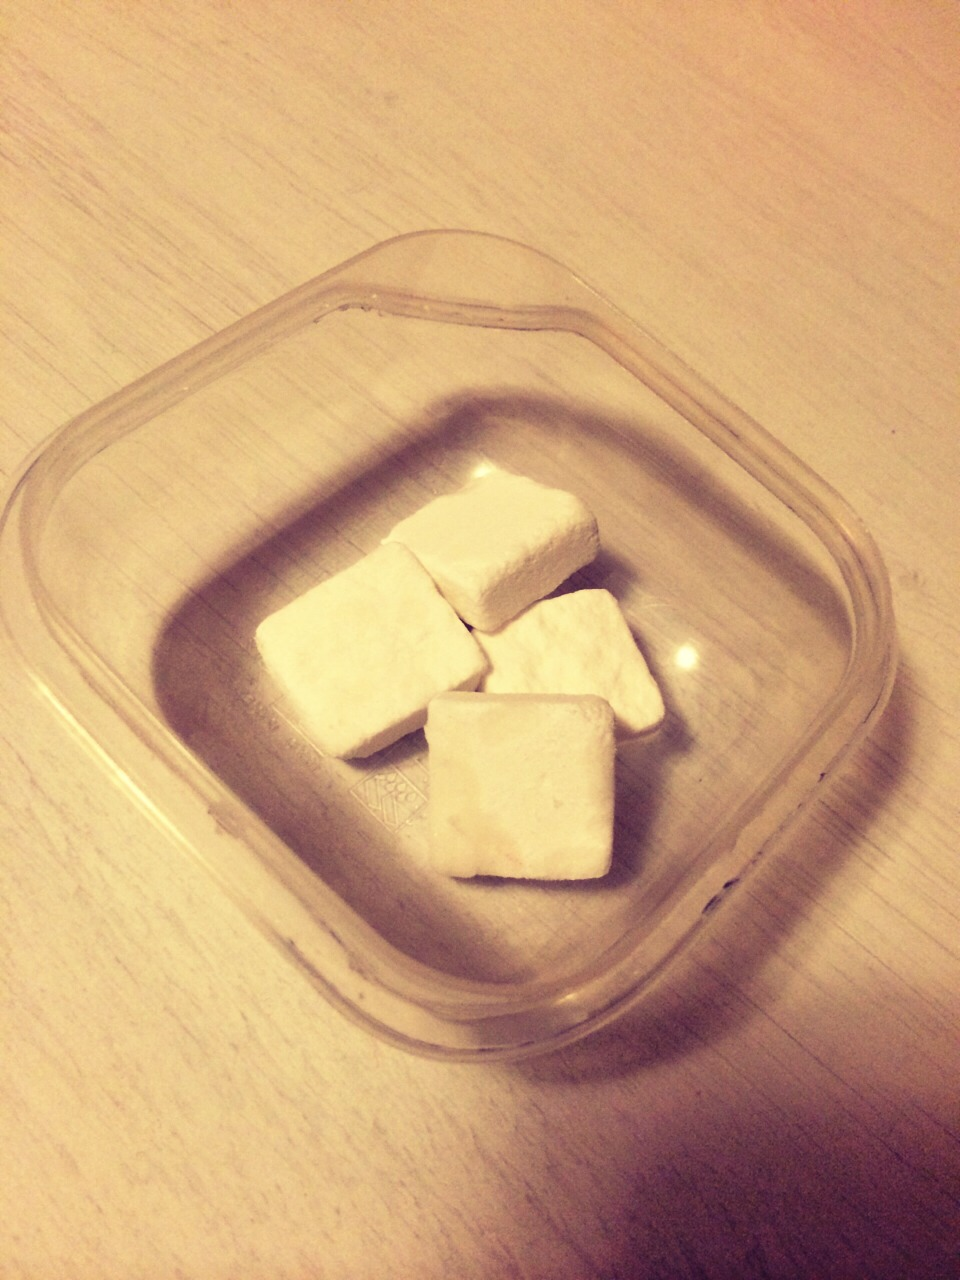 Start off with 4 sugar cubes or any kind of white sugar you have, and put it in a small container.